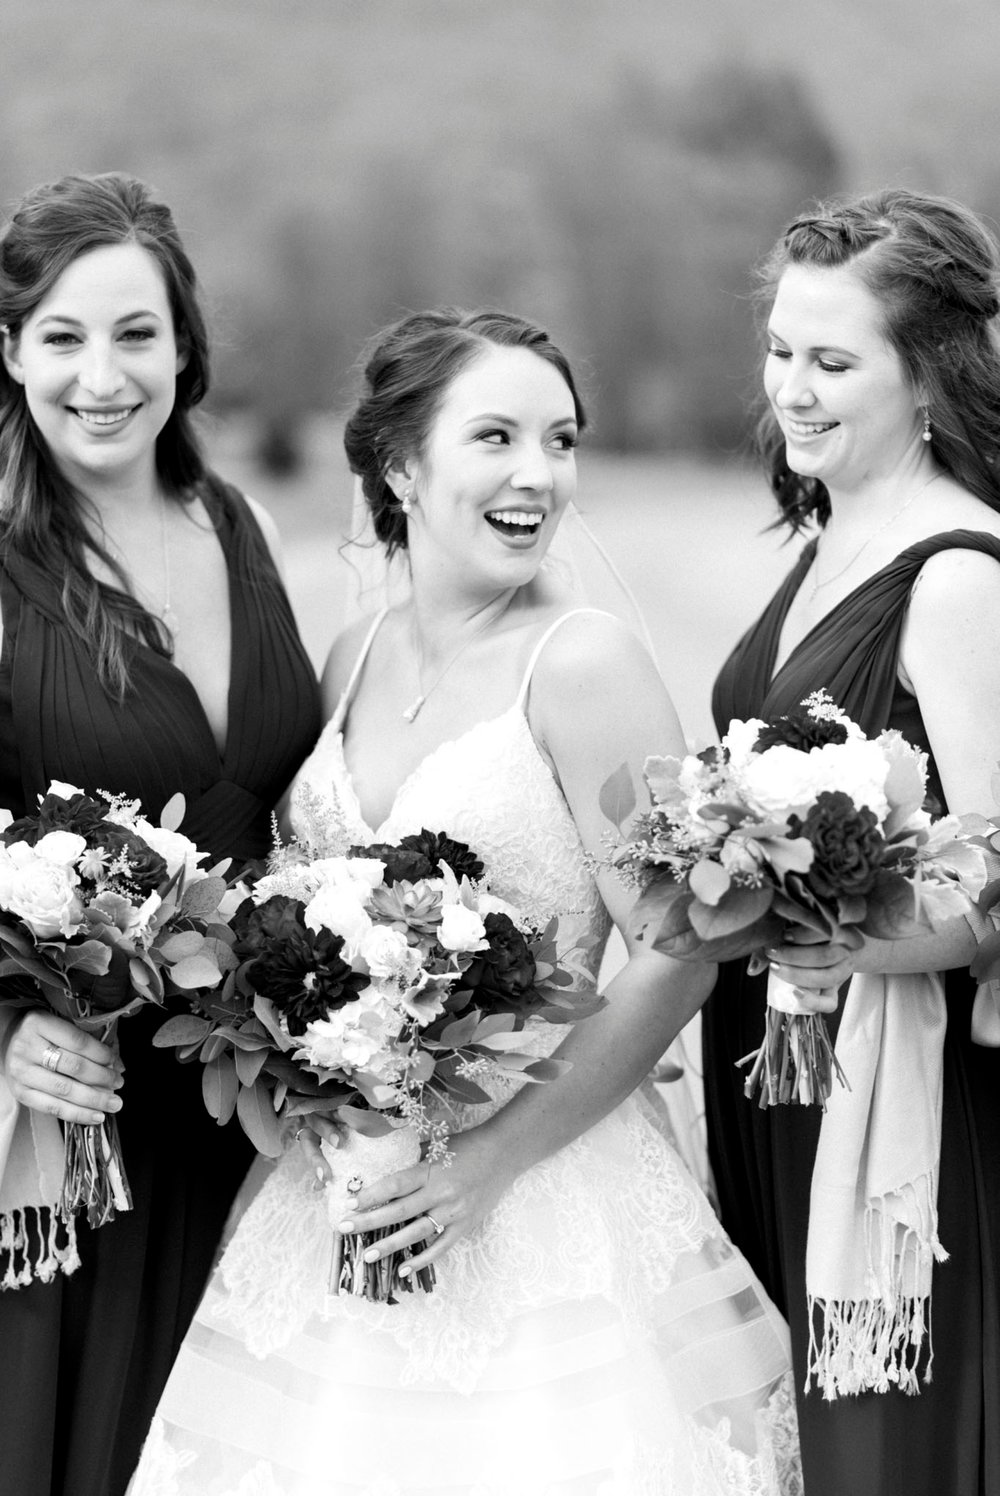 IrvineEstate_LexingtonVA_Wedding_FallWedding_VirginiaWeddingPhotographer 42.jpg